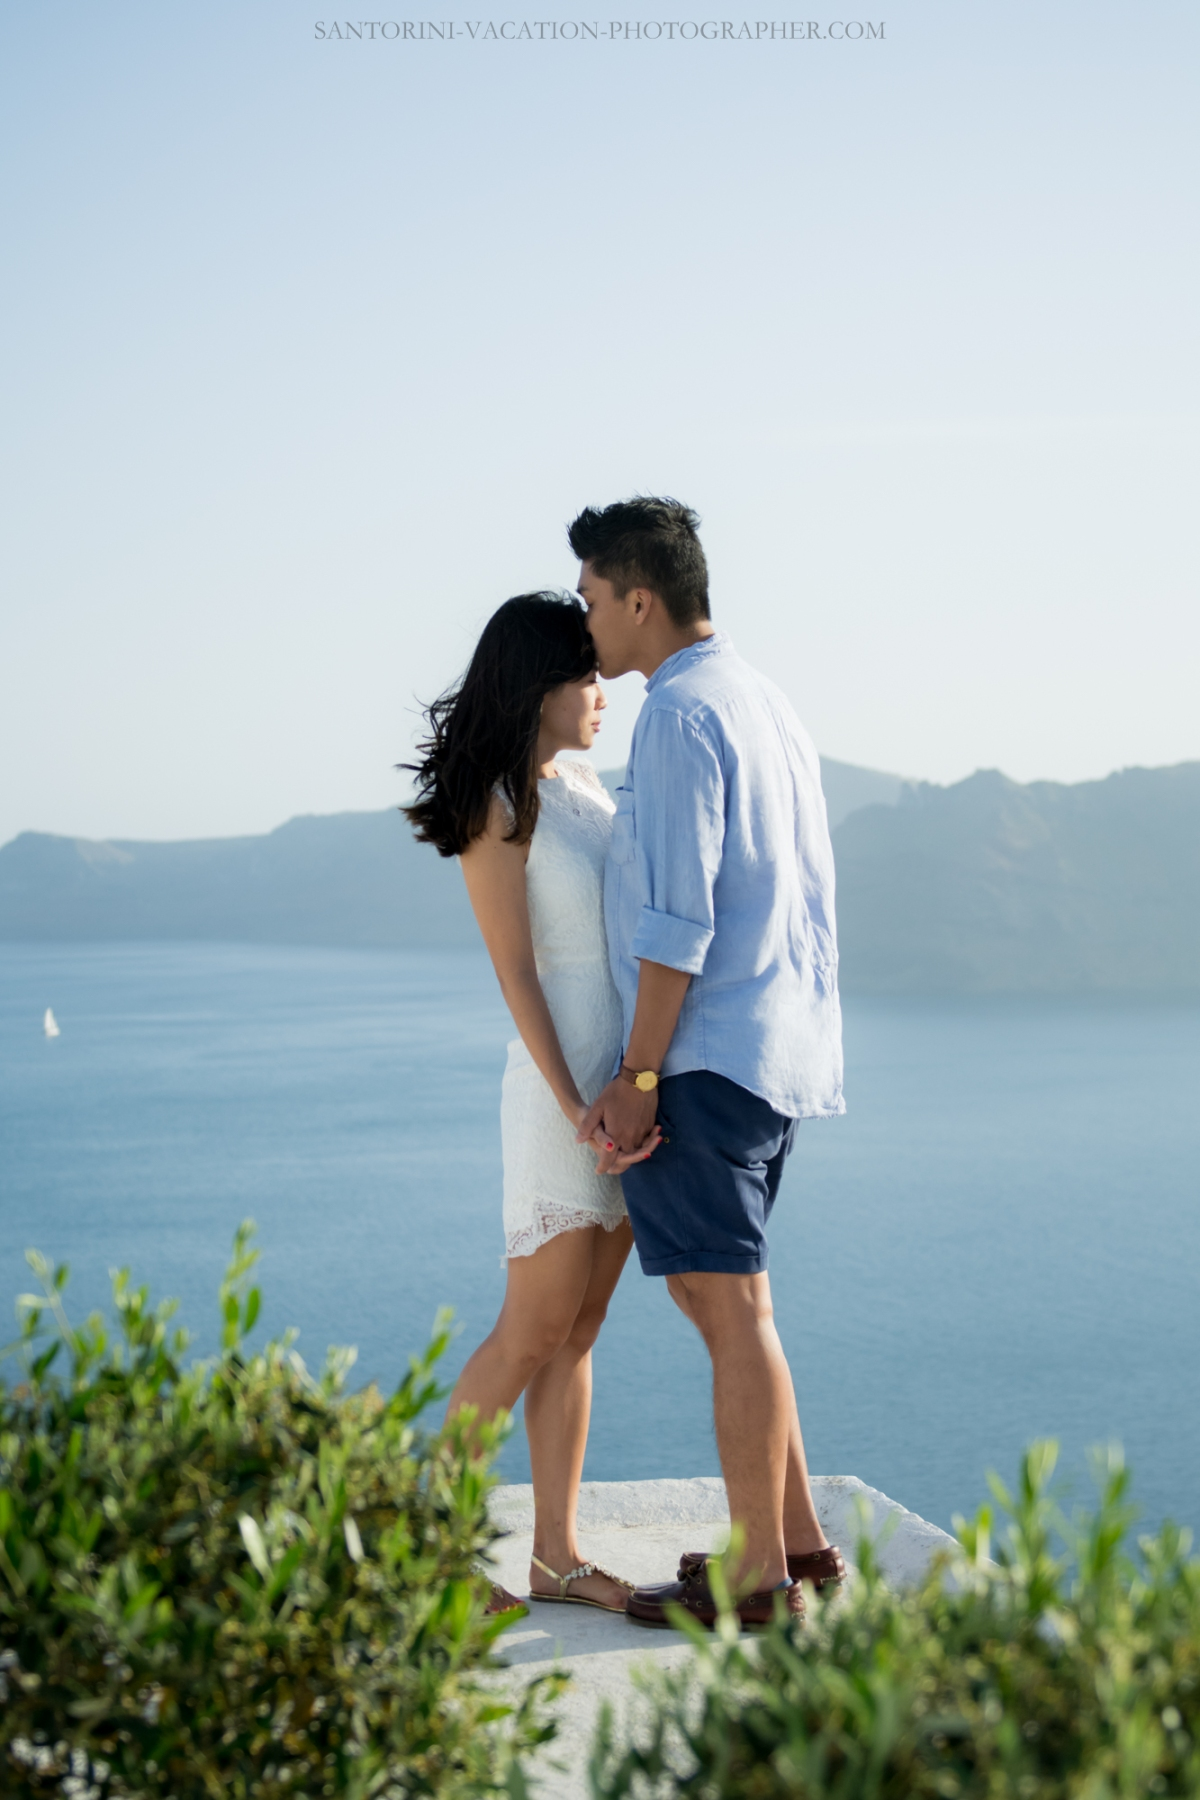 Santorini-lifestyle-photographer-Oia-photoshoot-pre-wedding-{Sequence # (001)»}